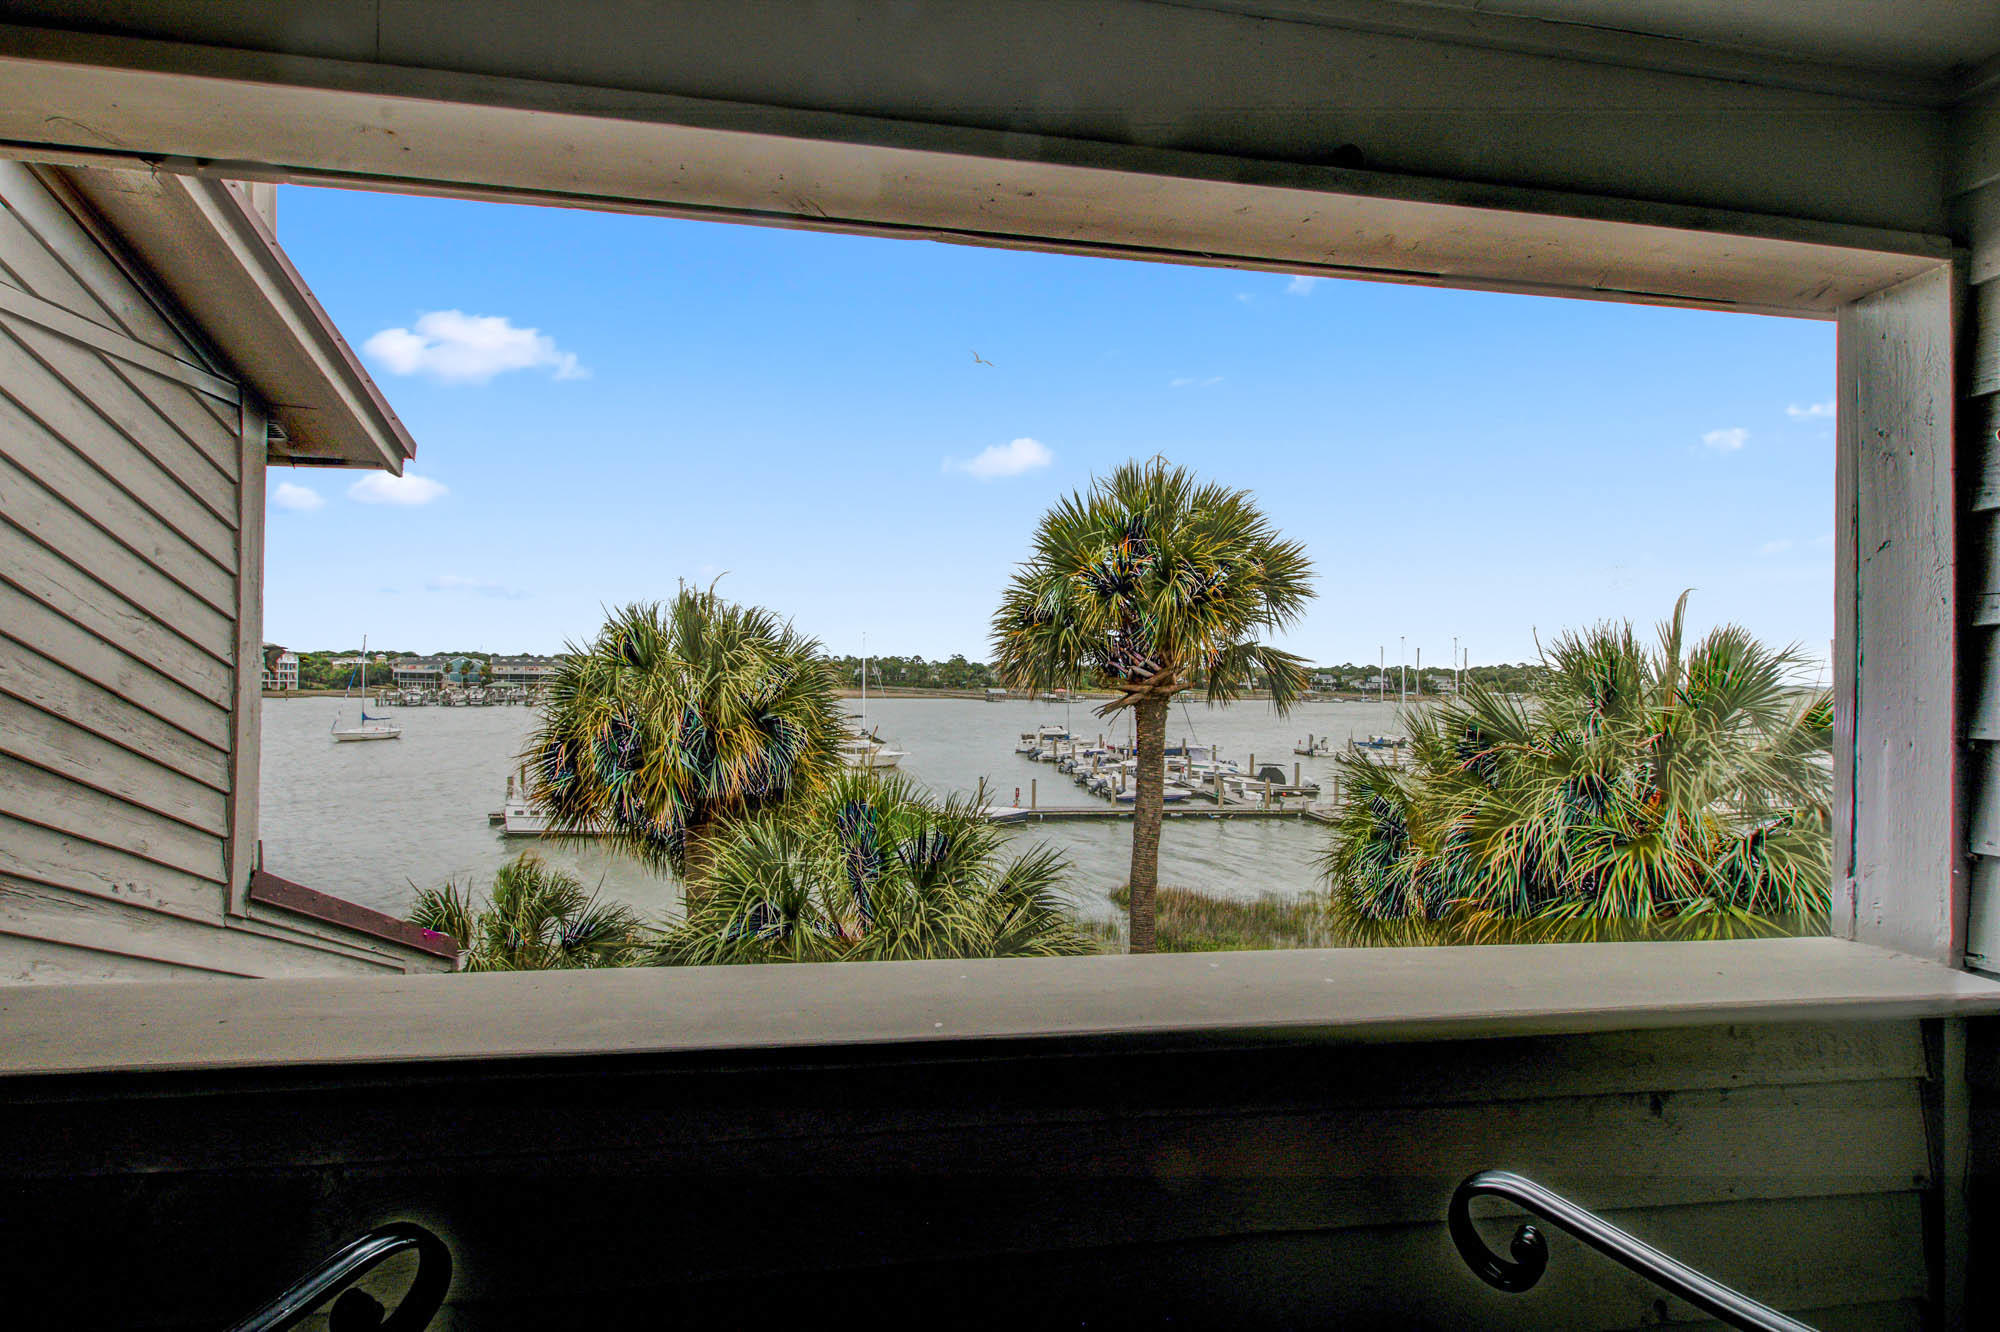 Mariners Cay Homes For Sale - 56 Mariners Cay, Folly Beach, SC - 4